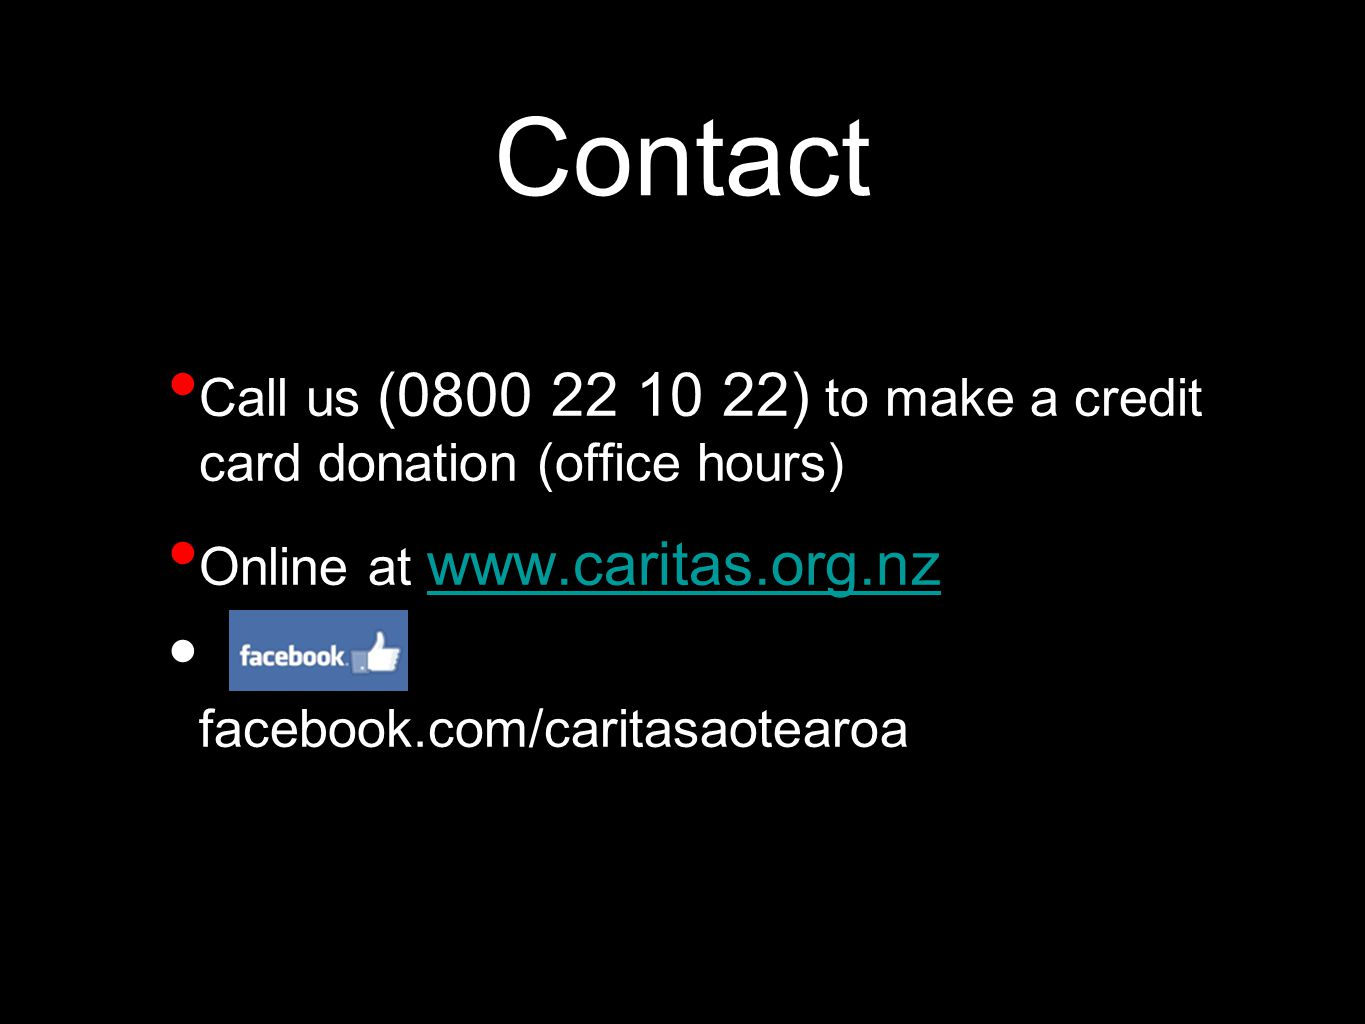 Contact Call us (0800 22 10 22) to make a credit card donation (office hours) Online at www.caritas.org.nz www.caritas.org.nz facebook.com/caritasaote